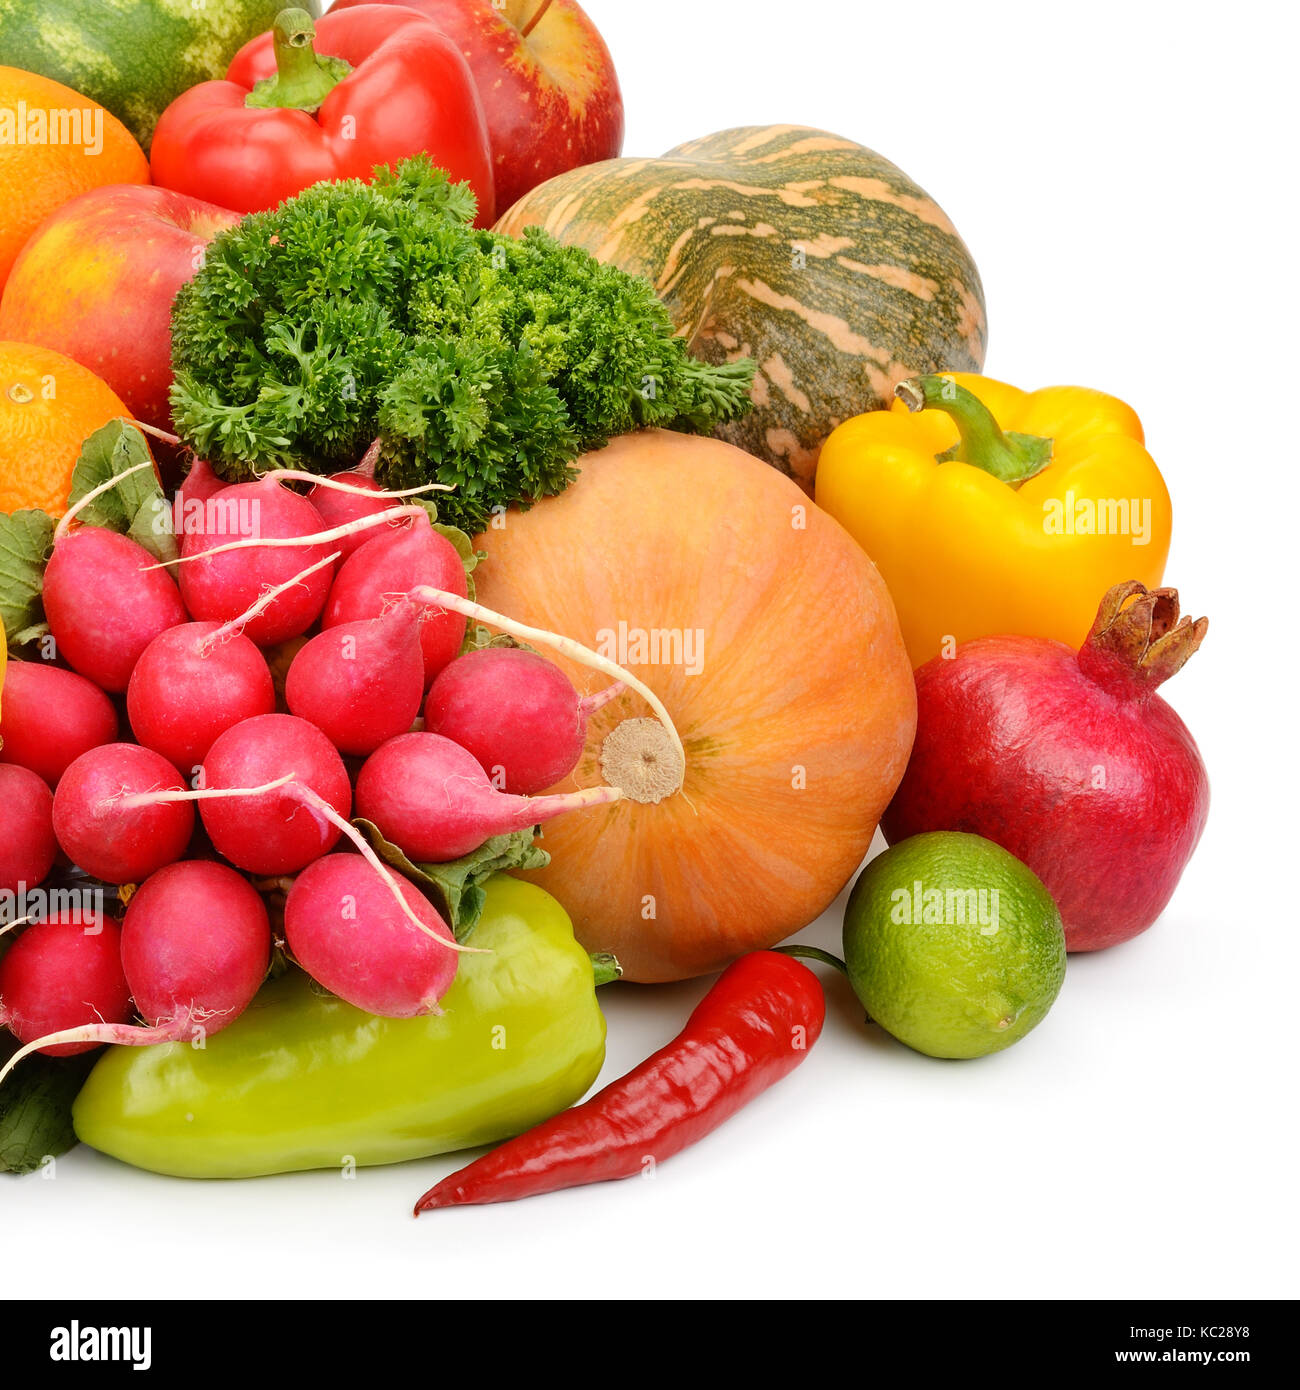 vegetables and fruits isolated on white background - Stock Image